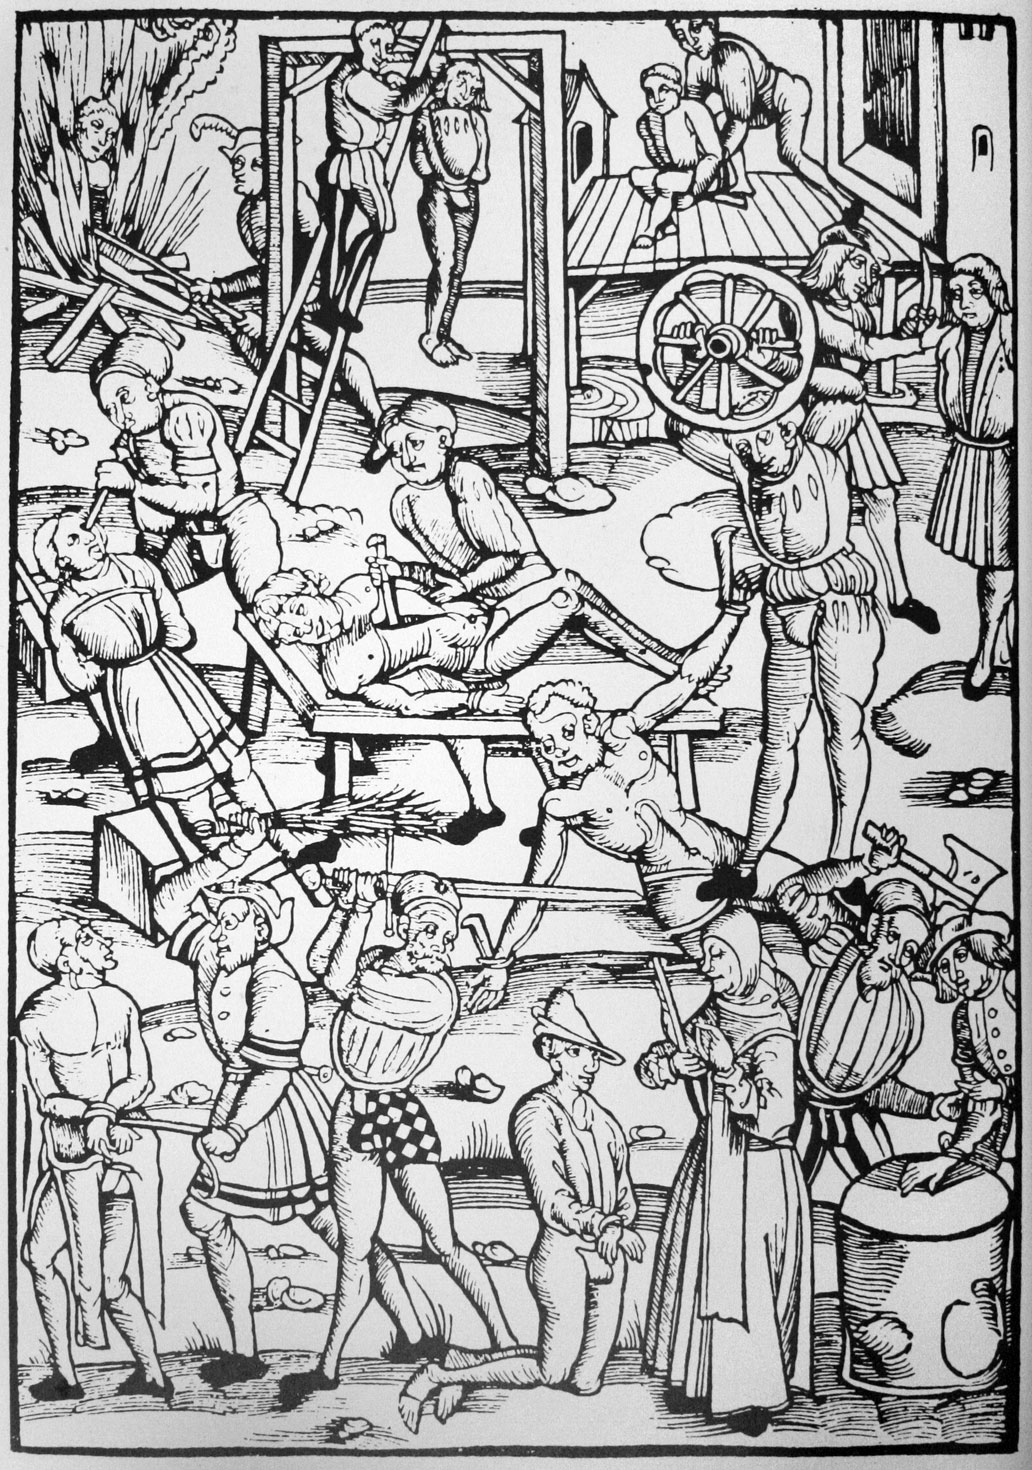 Fil:Punishing-witches-Laienspiegel.jpg - Wikipedia